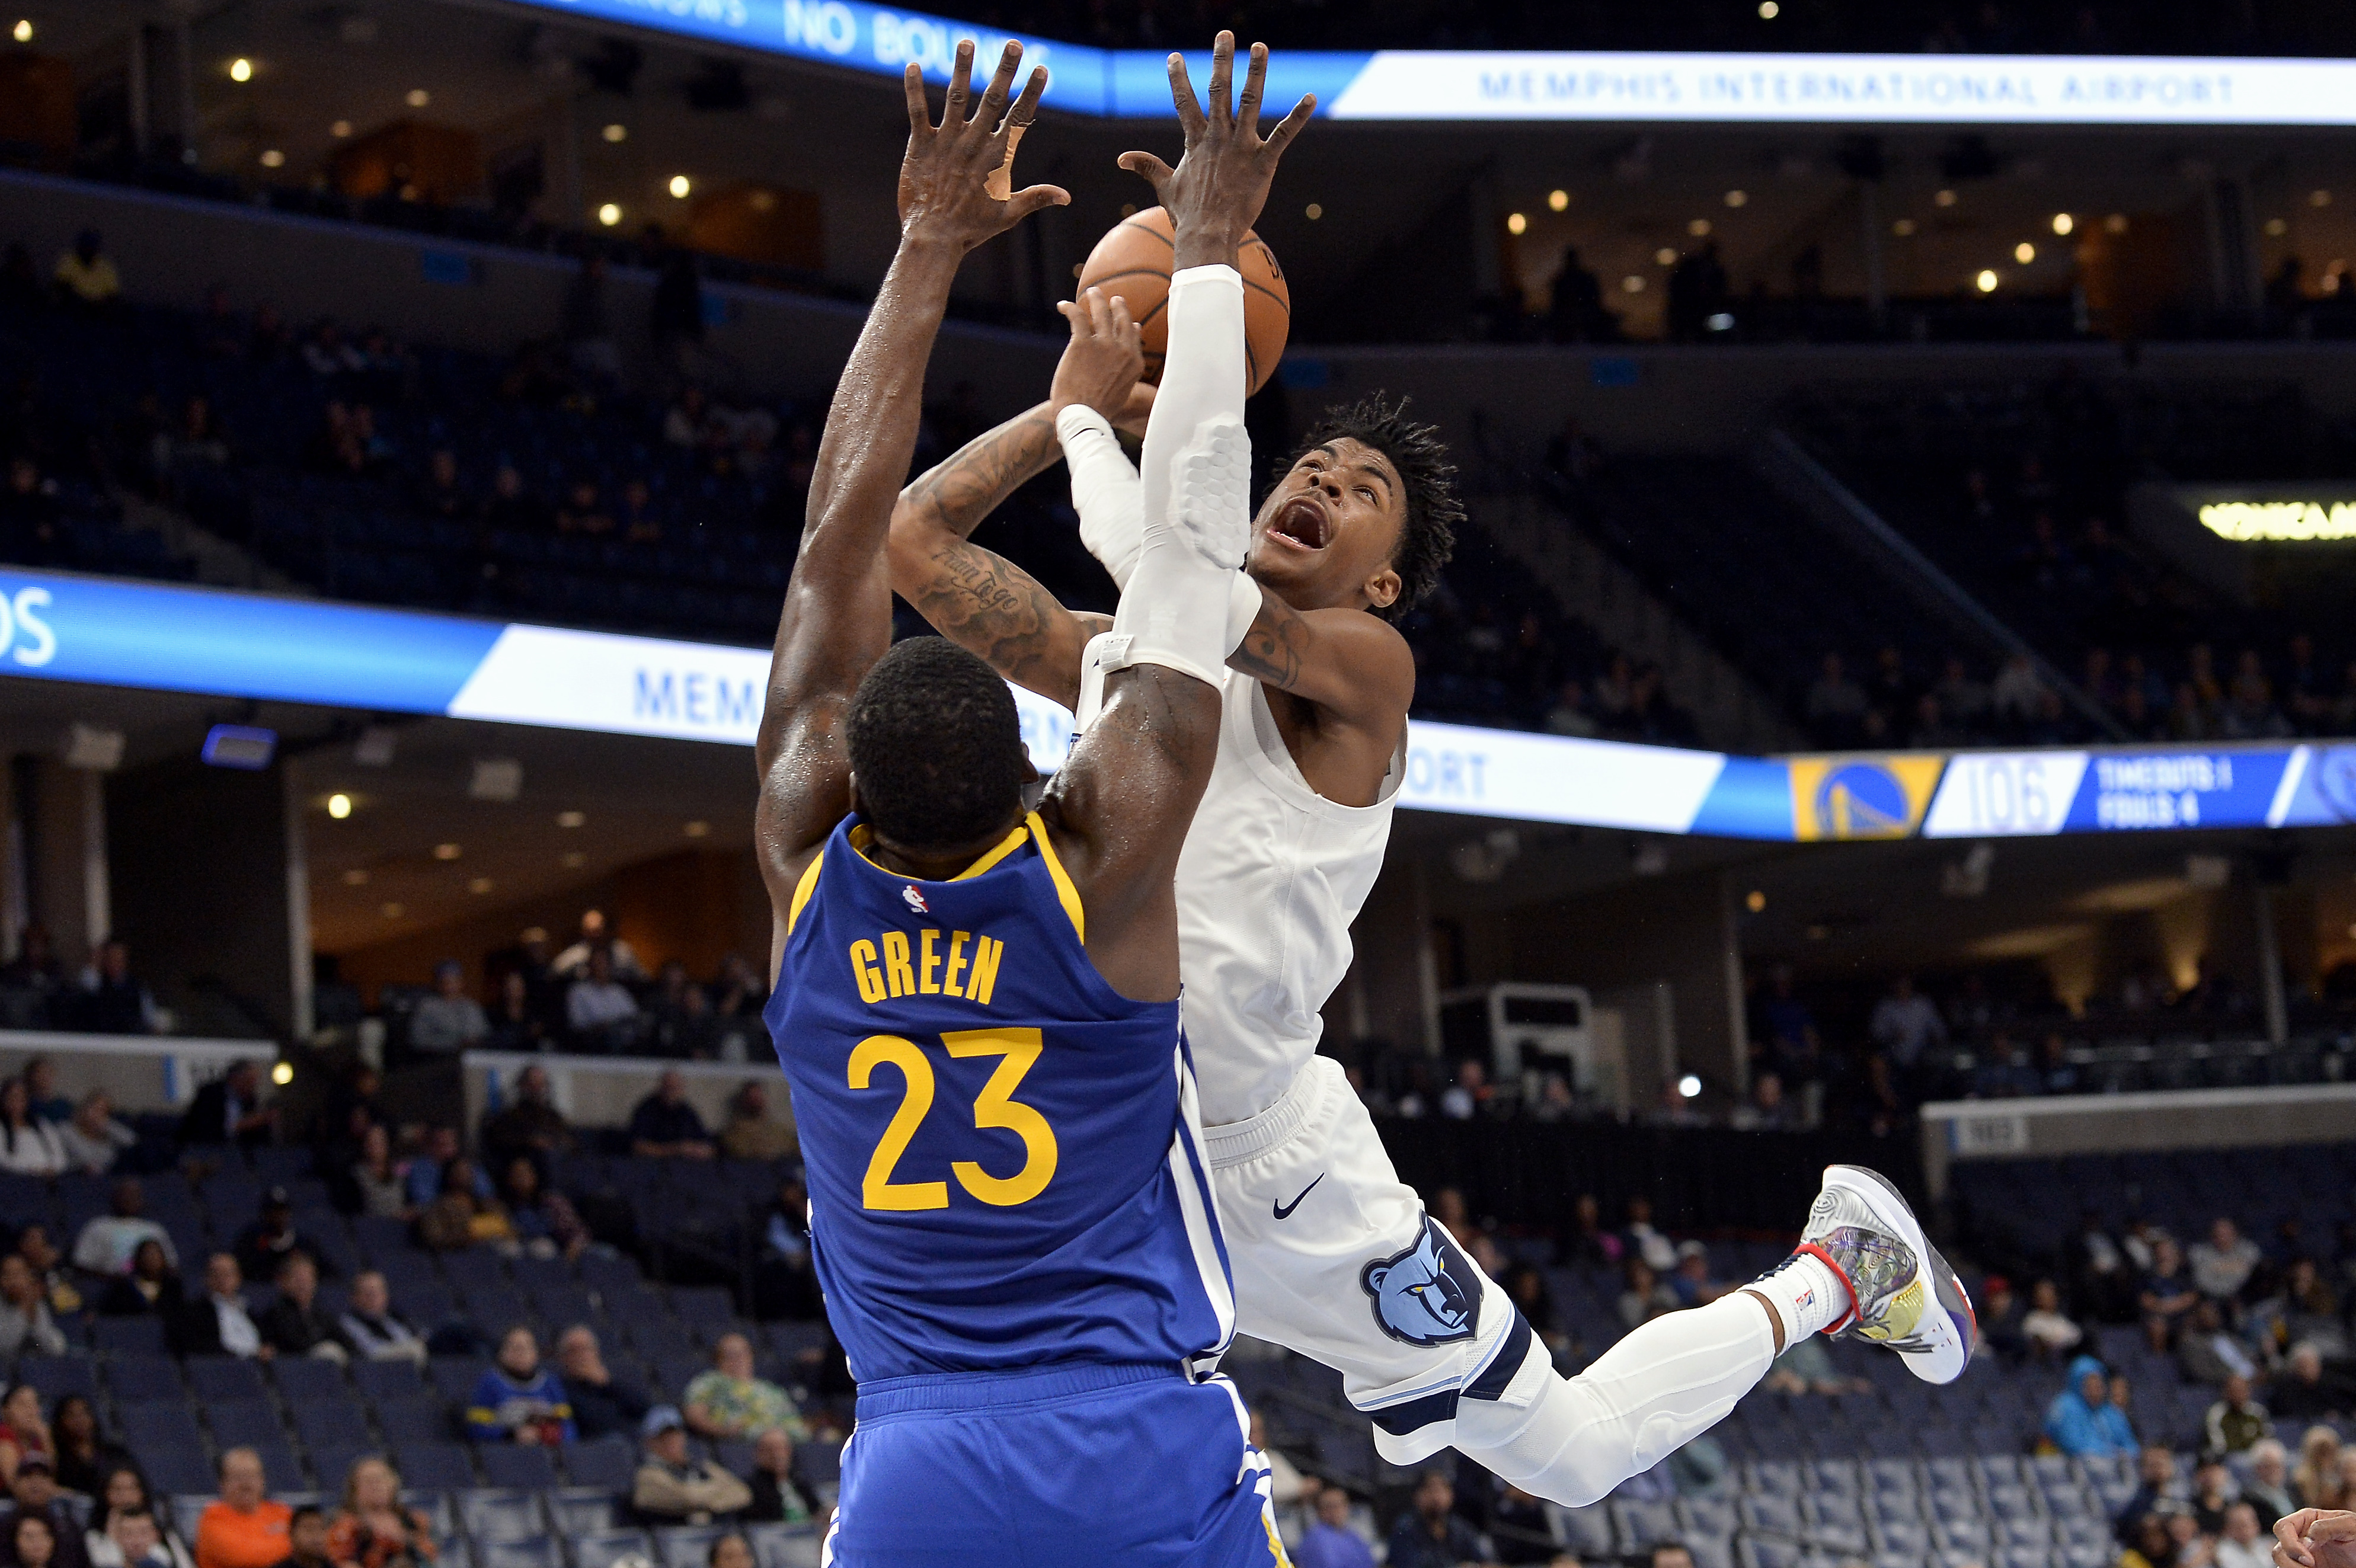 Burks scores 29 as Warriors end skid with win over Grizzlies